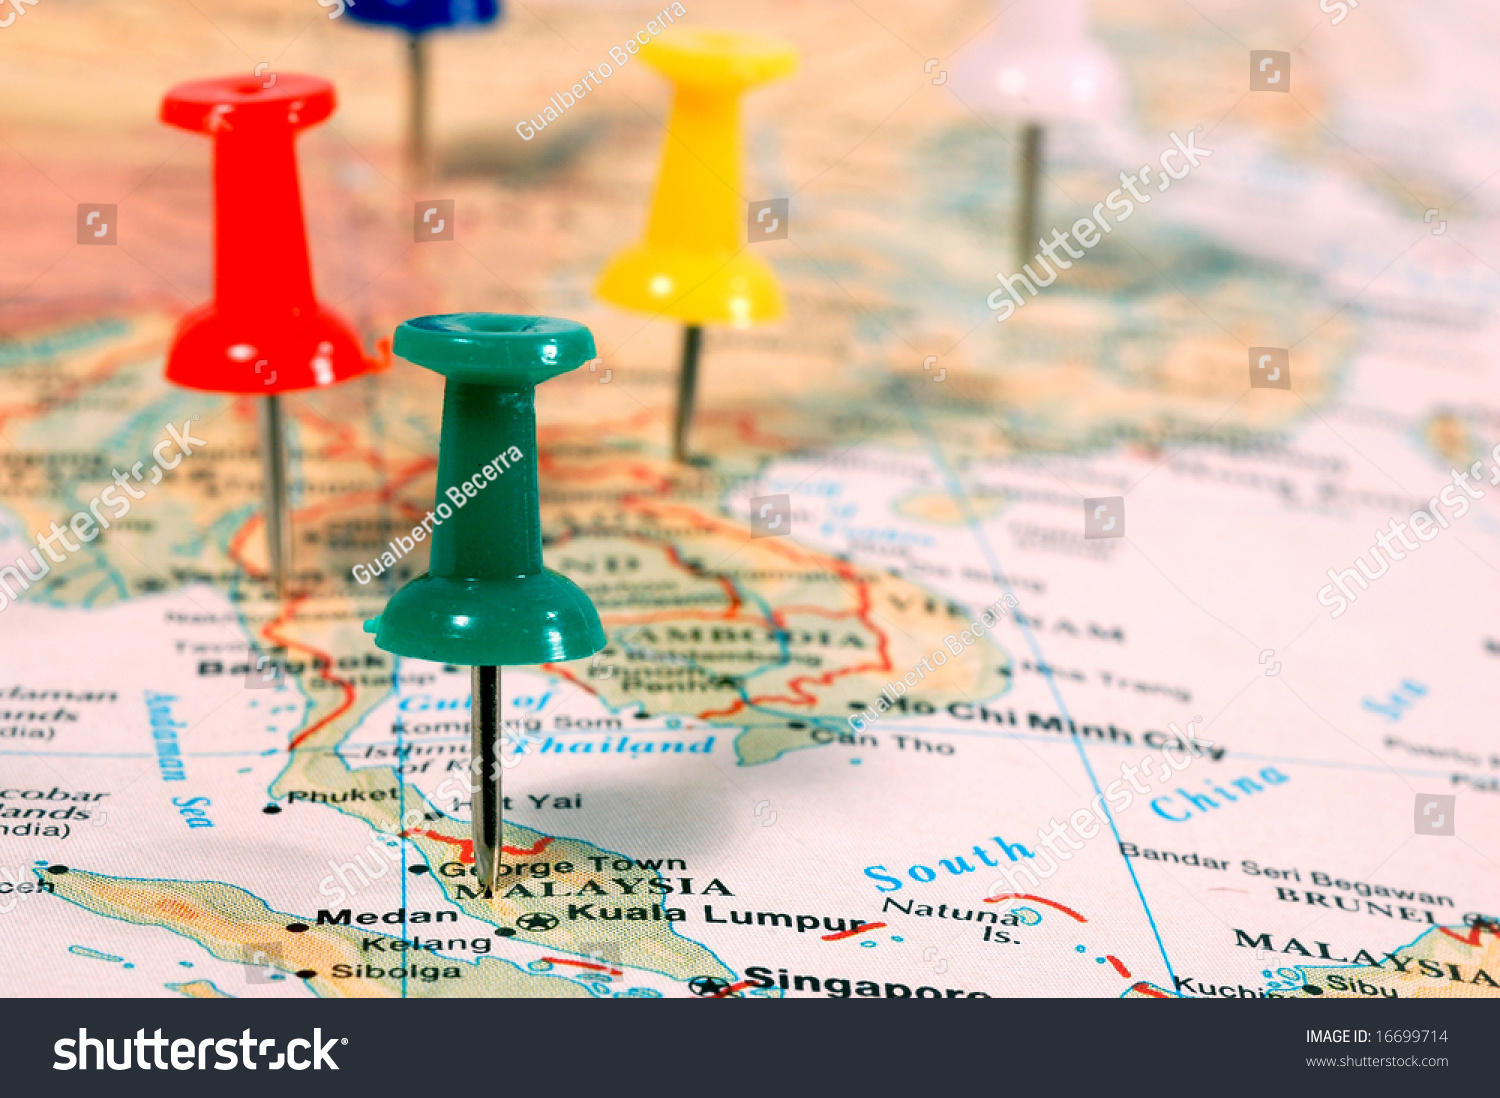 Map south east asia pins showing stock photo 16699714 shutterstock map of south east asia with pins showing cities locations gumiabroncs Images